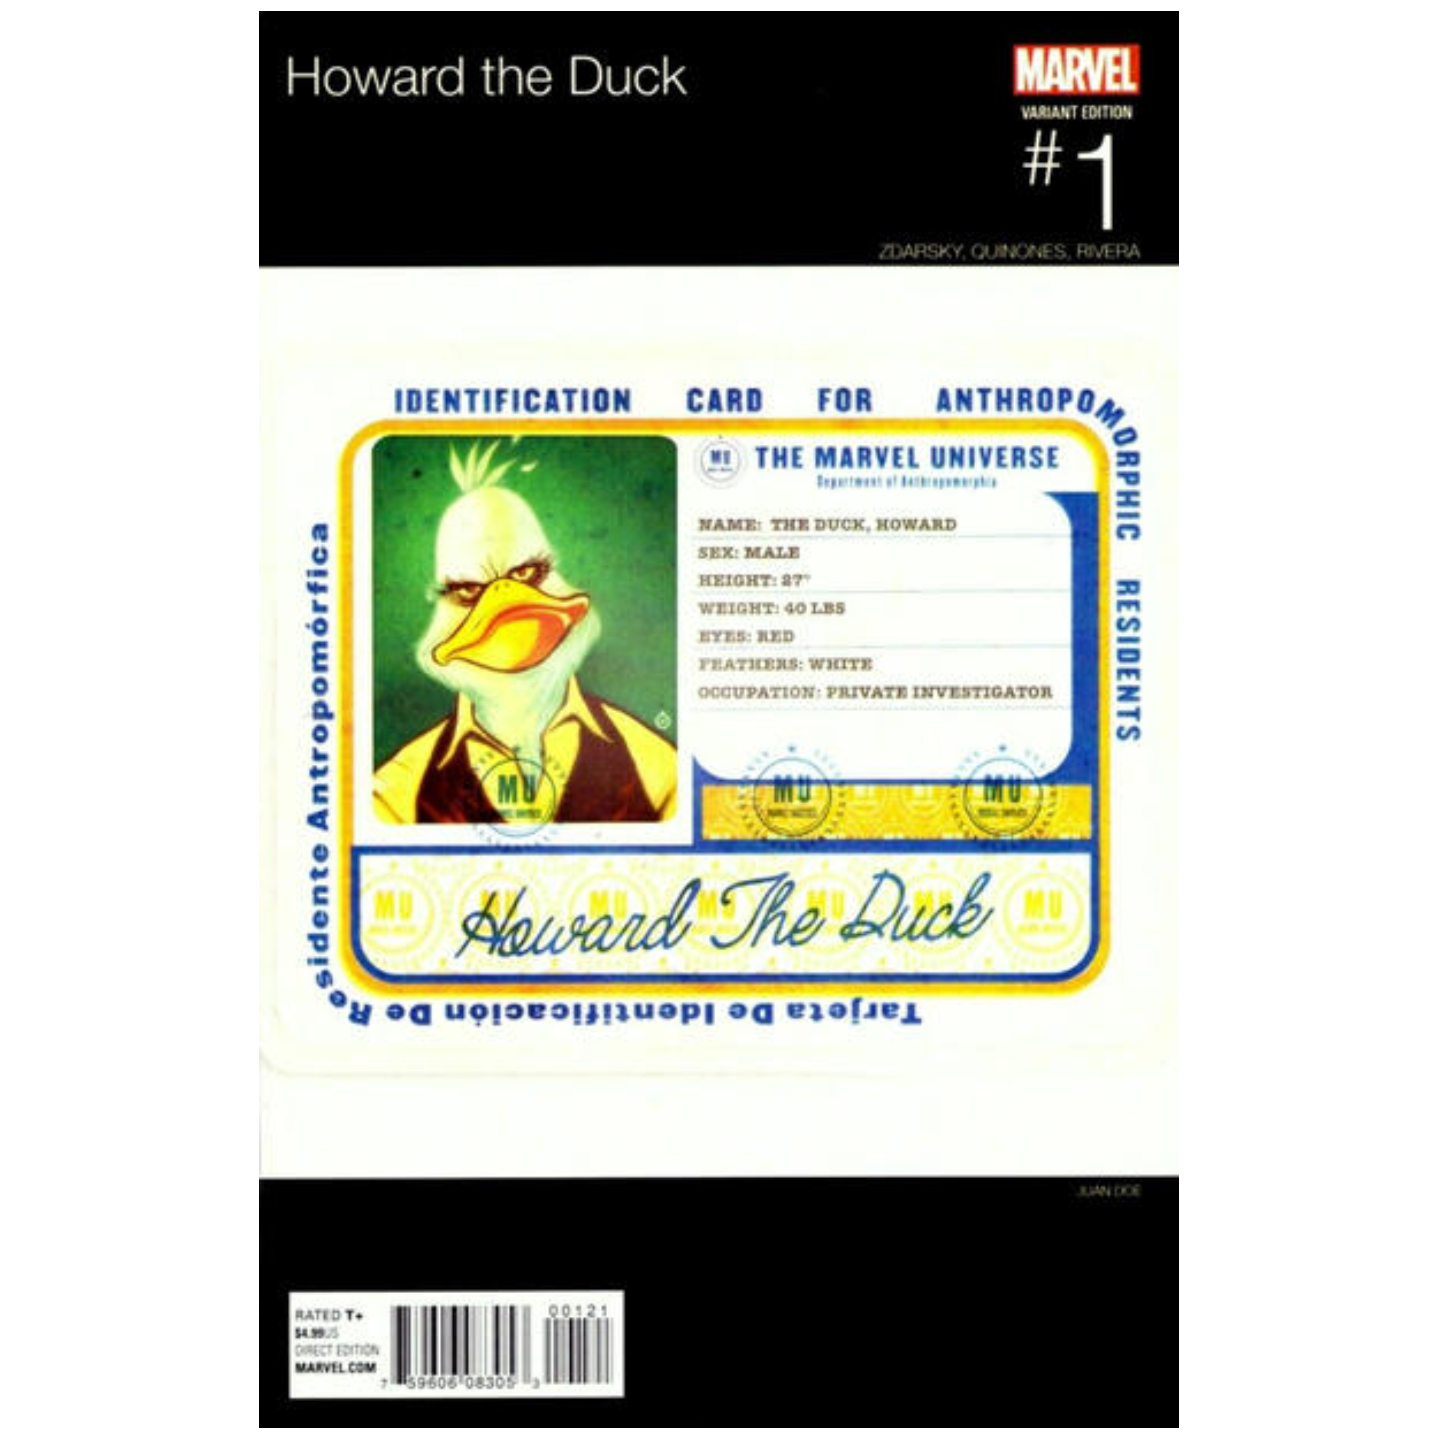 HOWARD THE DUCK #1 HIP HOP VARIANT